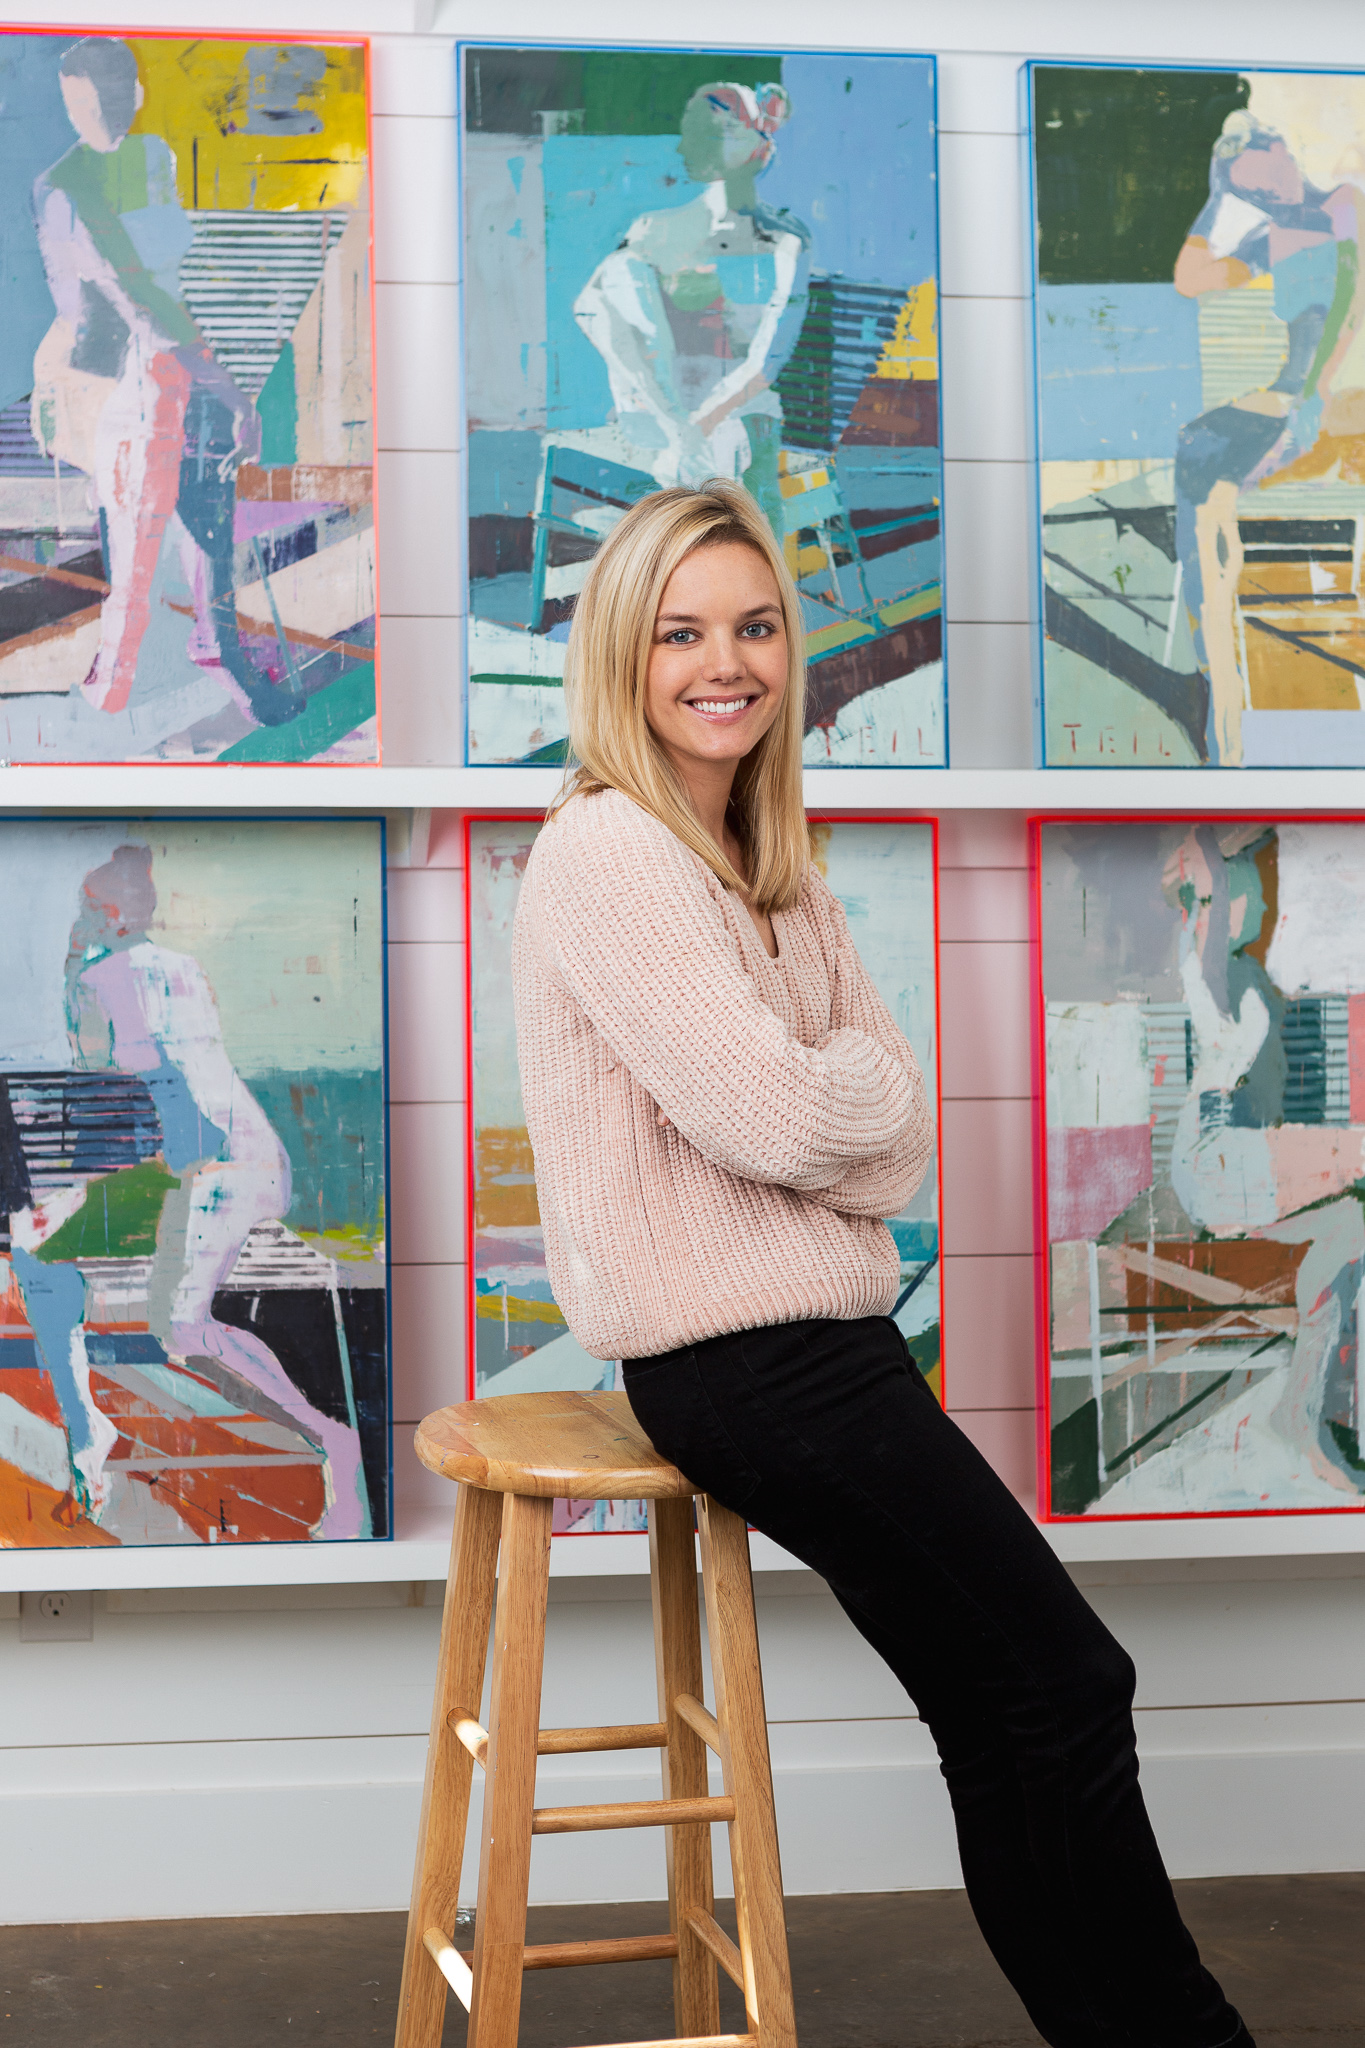 Days From Her Latest Launch, Teil Duncan Reveals Her Ultimate 'Pinch-Me' Moment